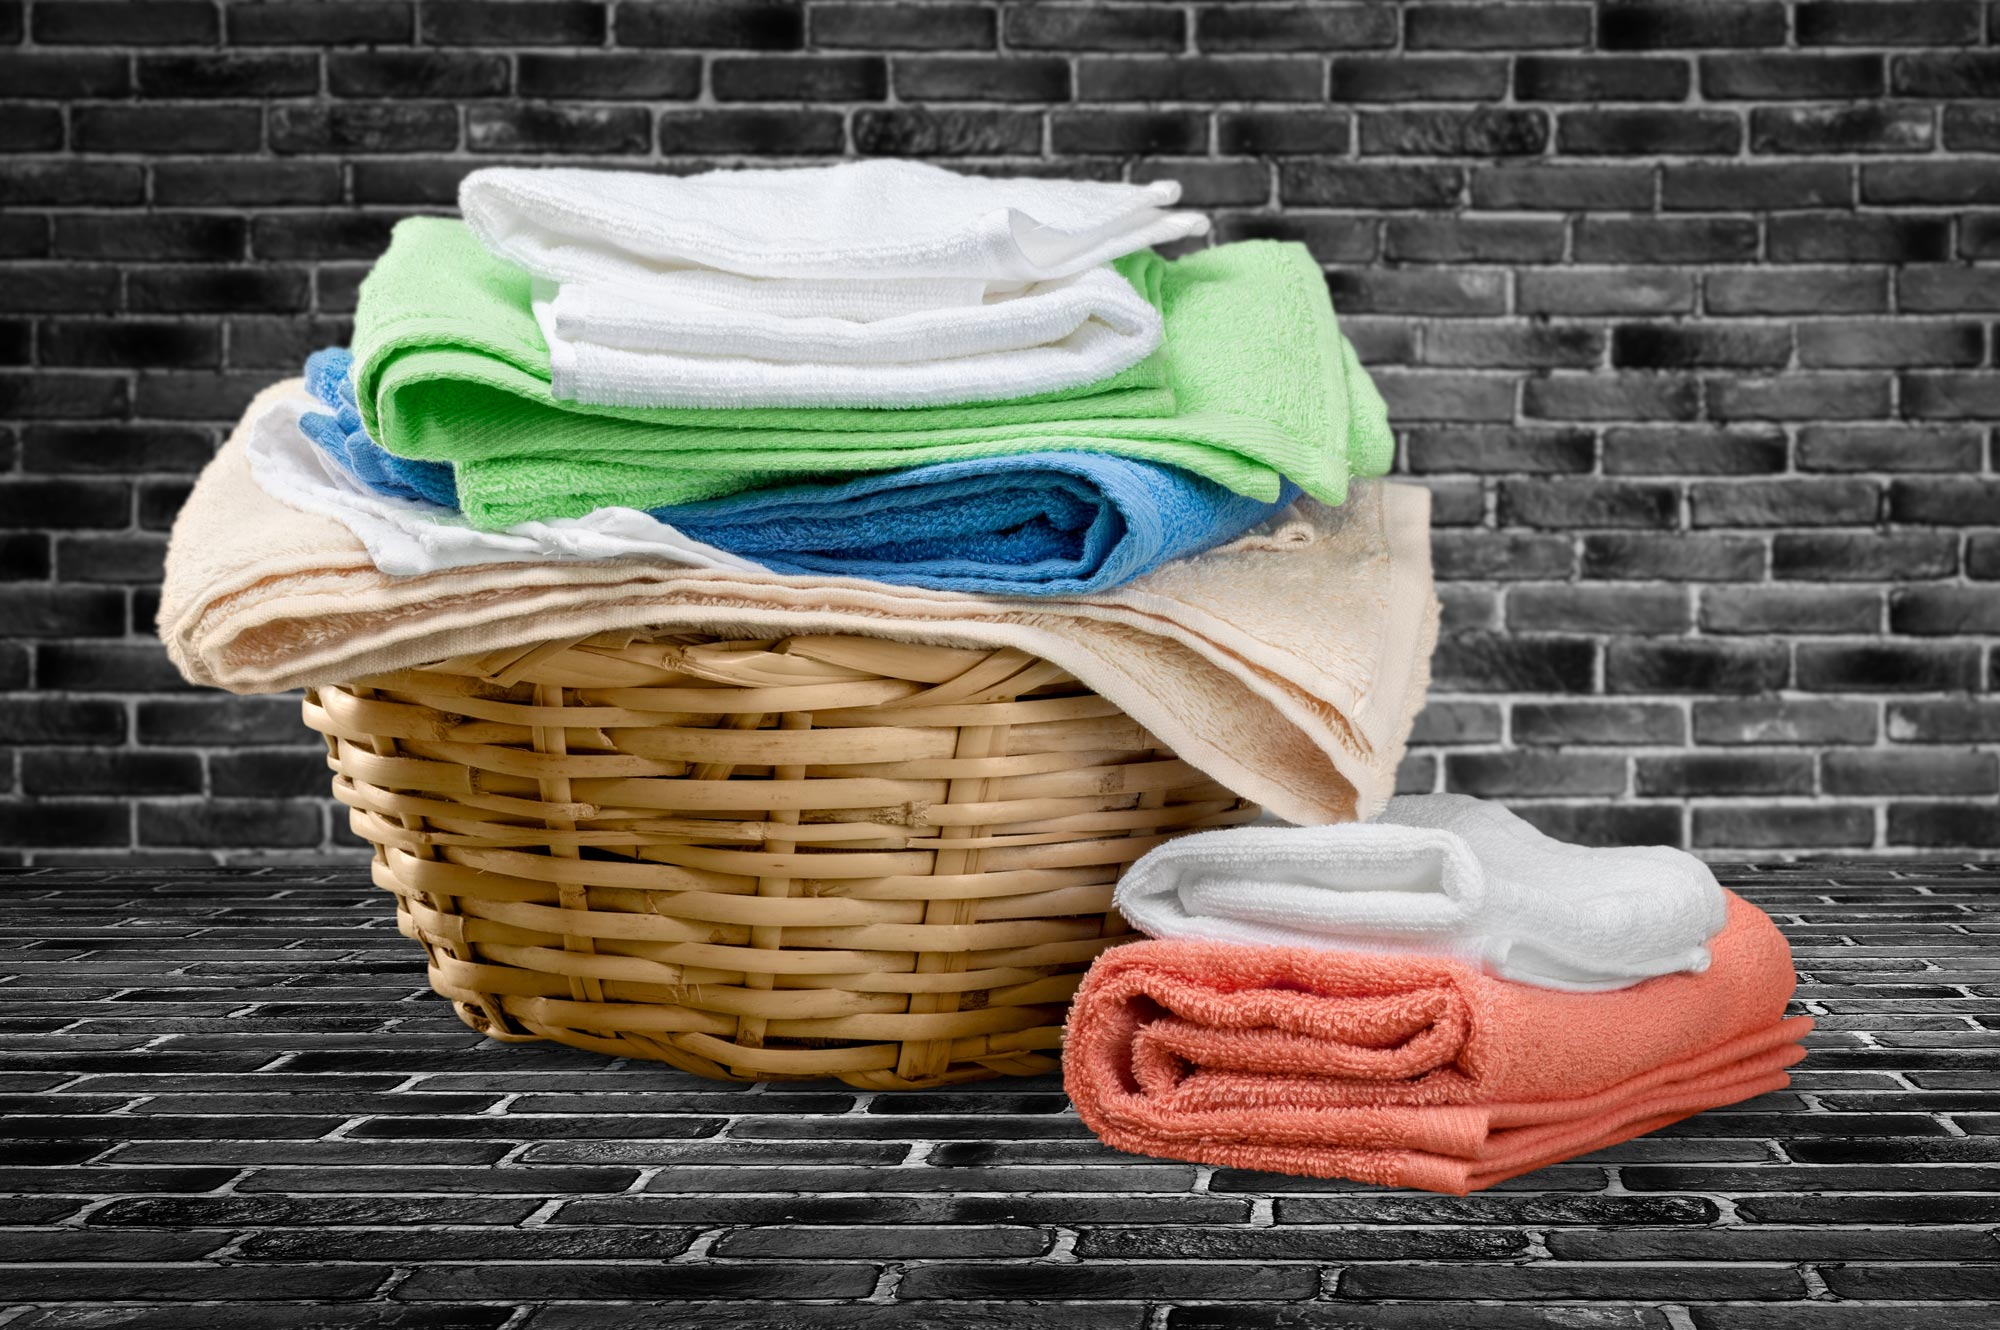 Rainbow Laundry and Linen - Domestic laundry service